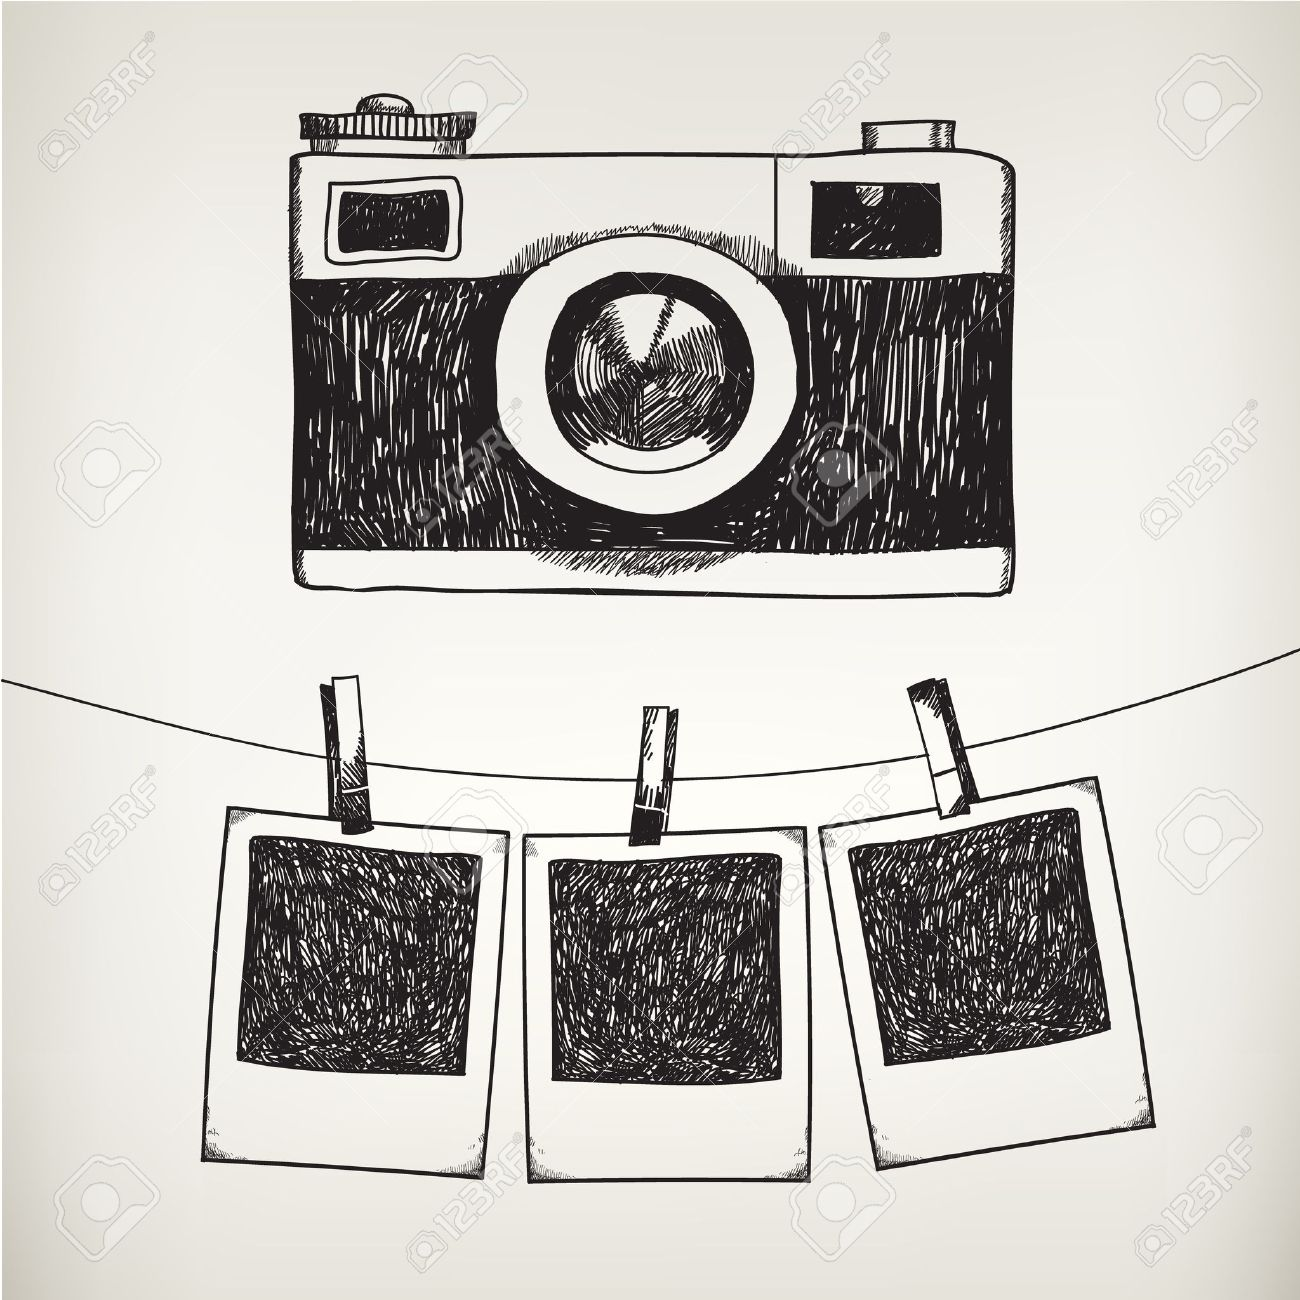 Vector hand drawn doodle illustration of retro photo frames and camera. Hanging photos in a photo studio. - 43197080